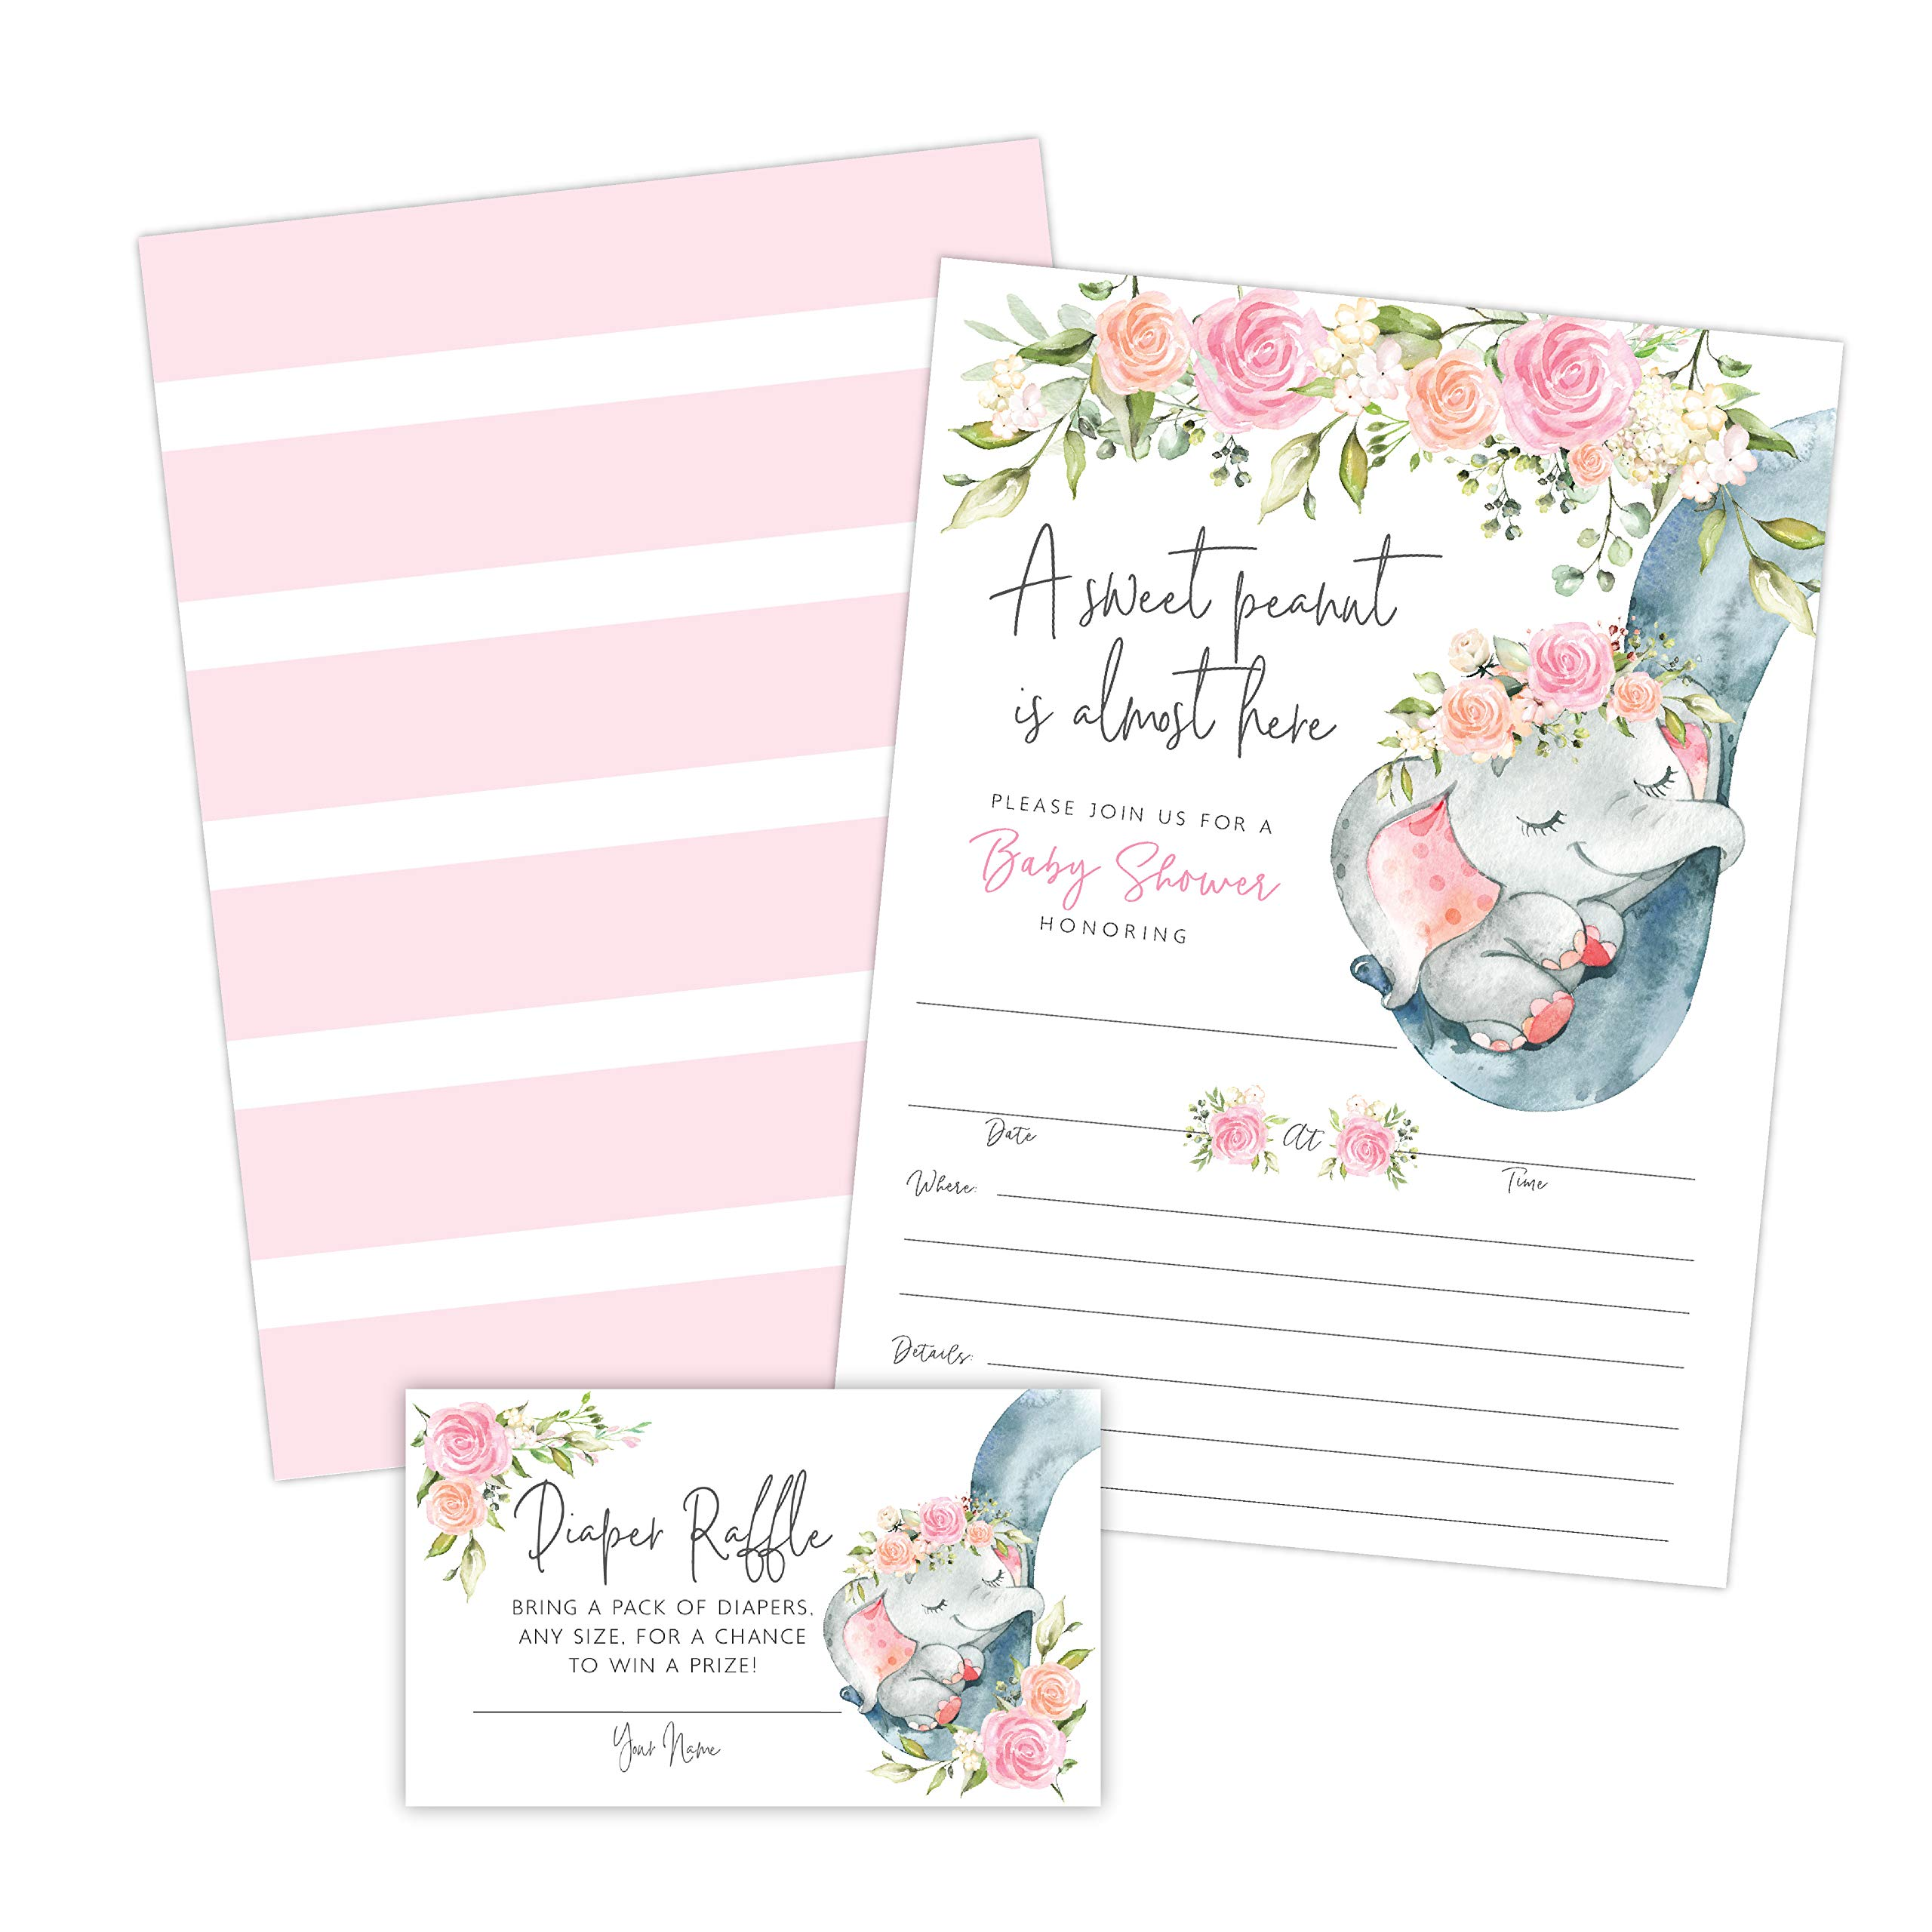 Elephant Girl Baby Shower Invitations, Peanut Baby Shower Invites with Diaper Raffles Cards, Sprinkle, 20 Invites Including Envelopes